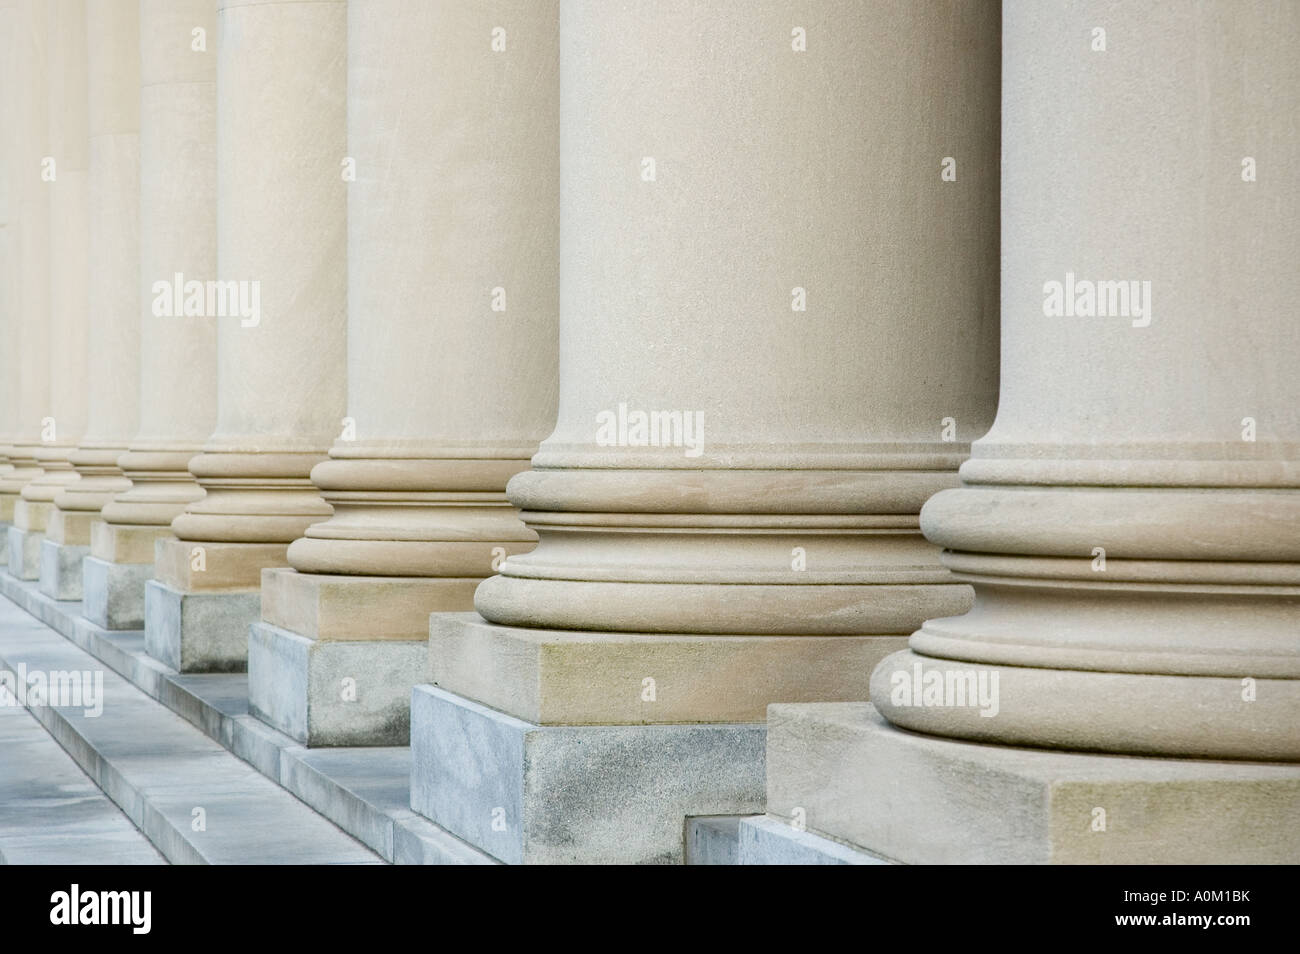 Pillars at the Widener Library in Harvard Yard, Cambridge, Massachusetts - Stock Image